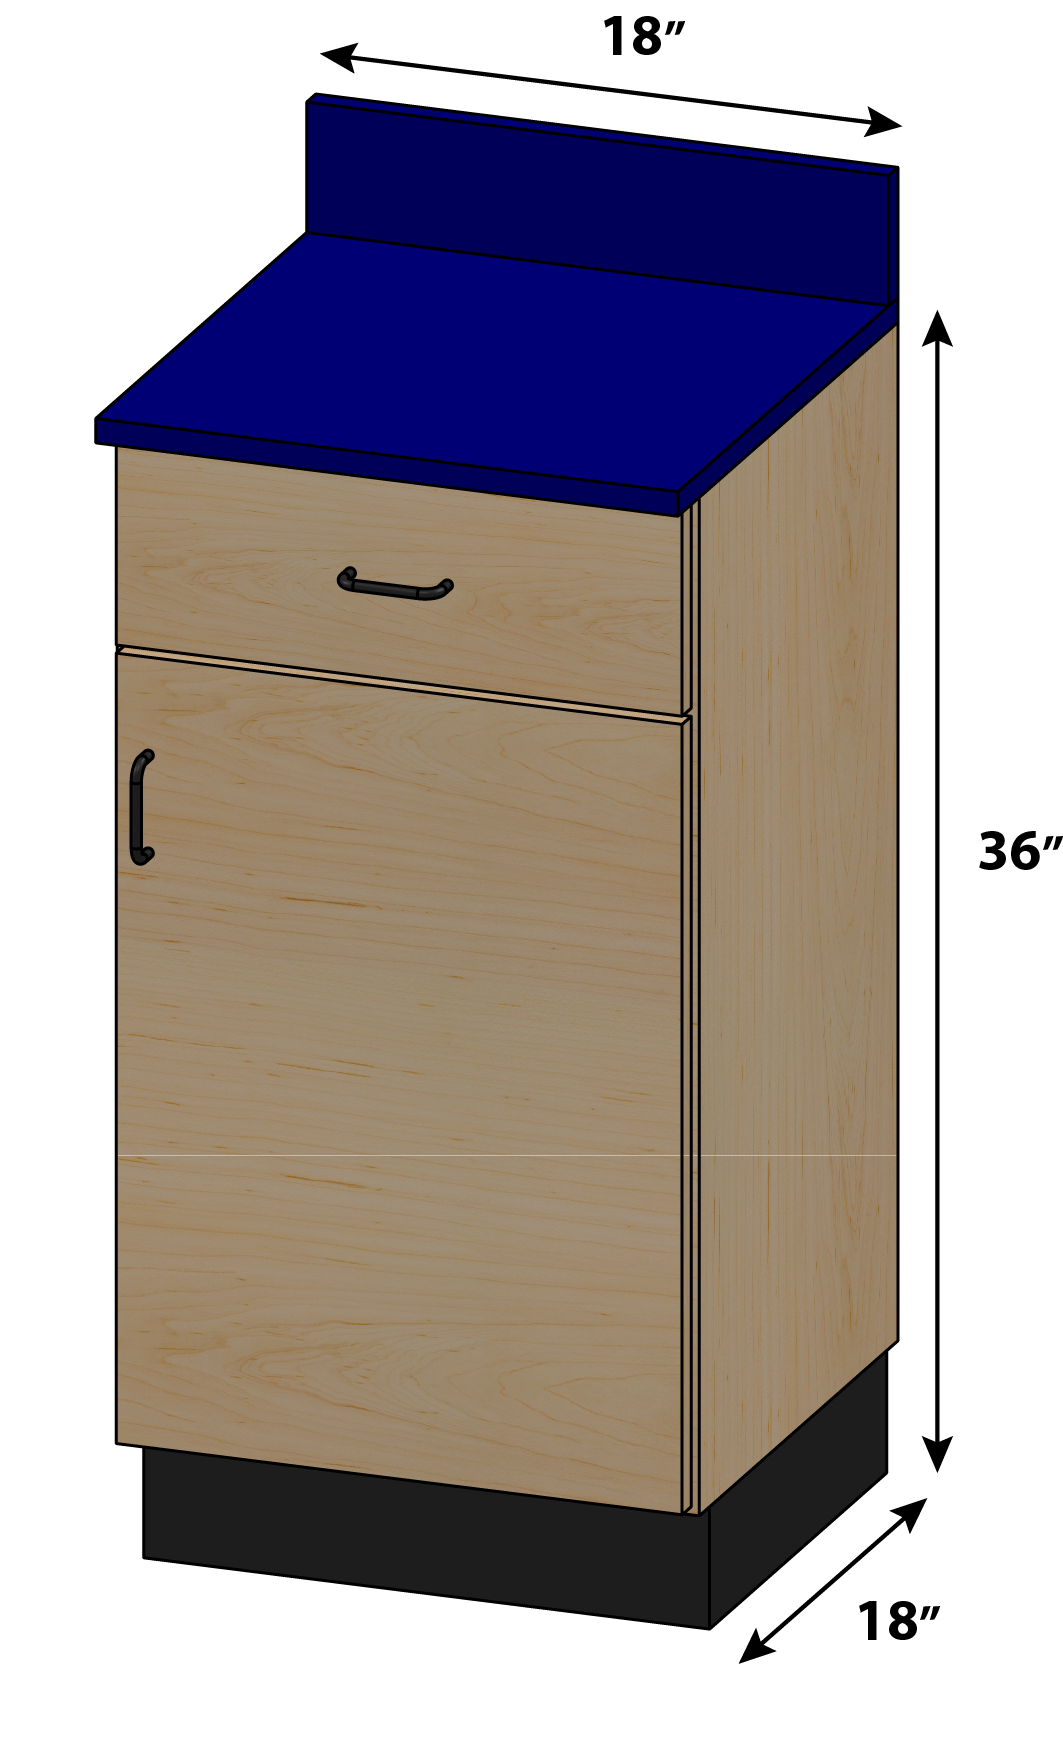 Stor-Edge Medical Base Cabinets